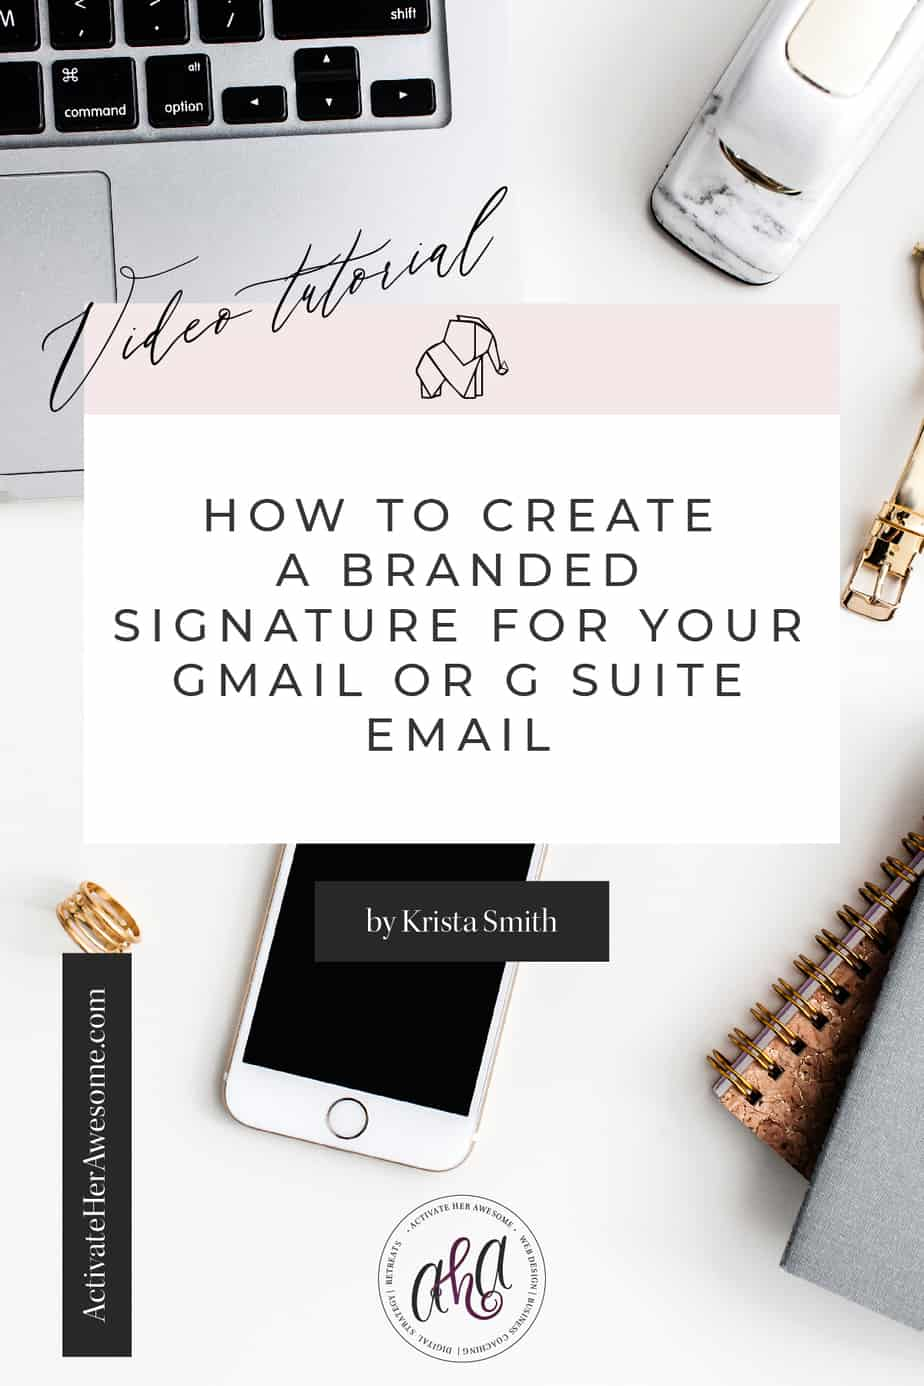 Watch this easy-to-follow video tutorial showing you how you can create a totally branded and strategic signature for your Gmail or G Suite Email Address by Krista Smith at ActivateHerAwesome.com